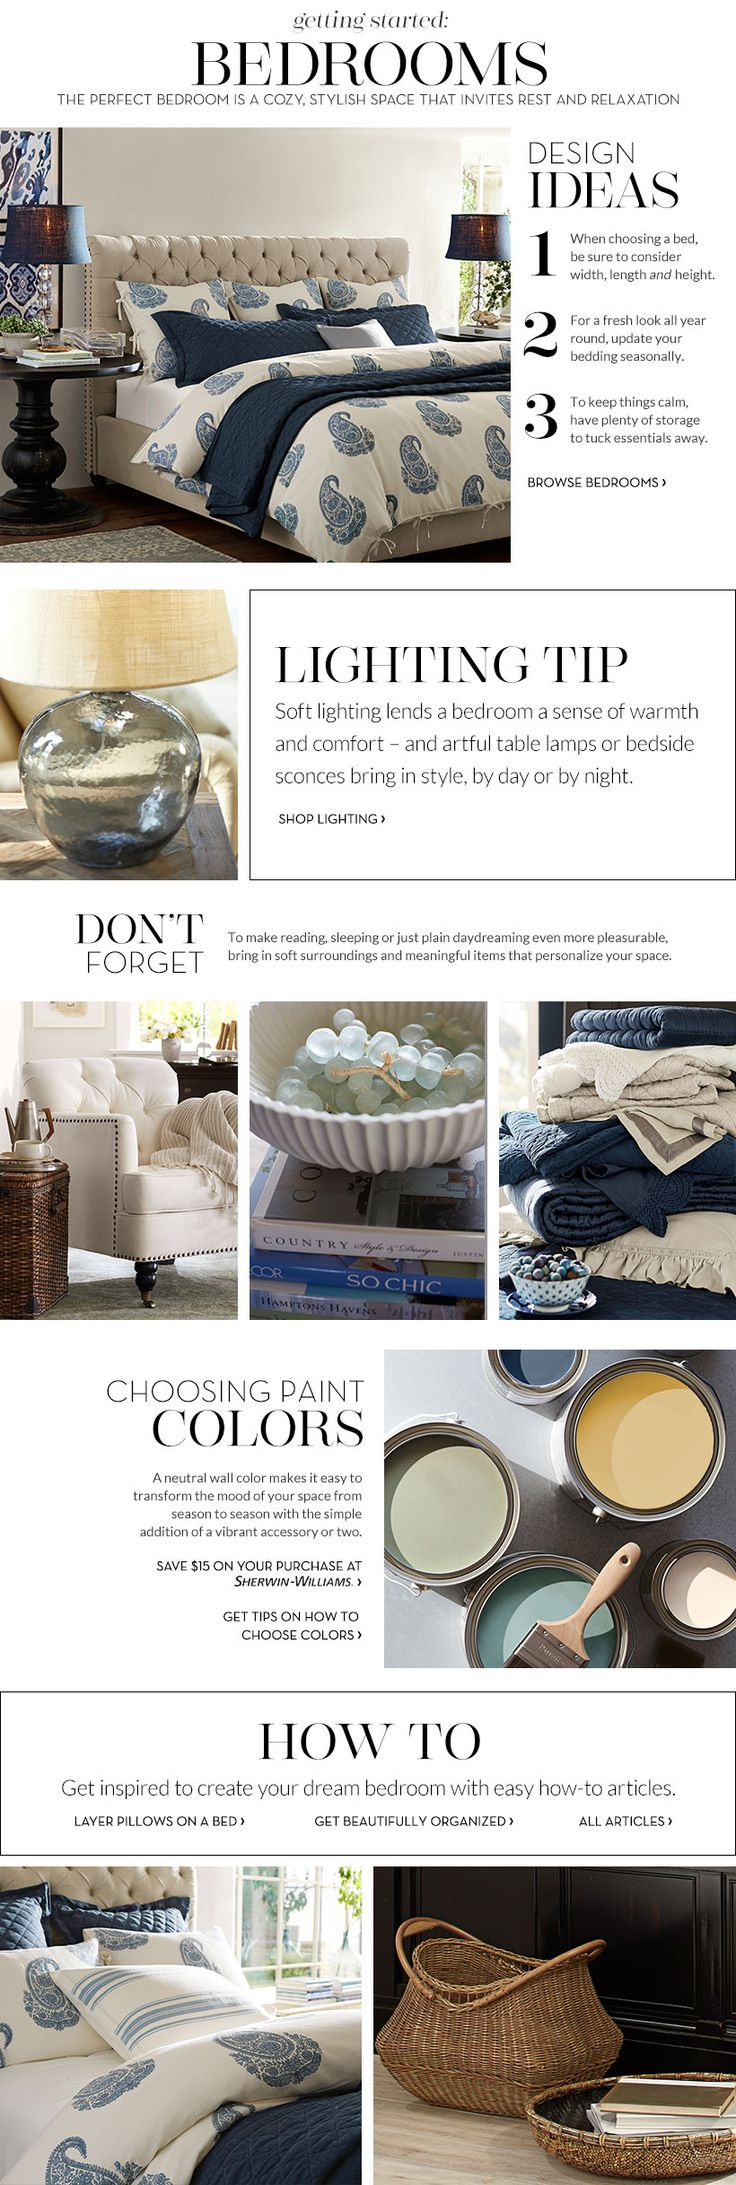 Bedroom Decorating Ideas | Bedroom Decorating Decor | Pottery Barn